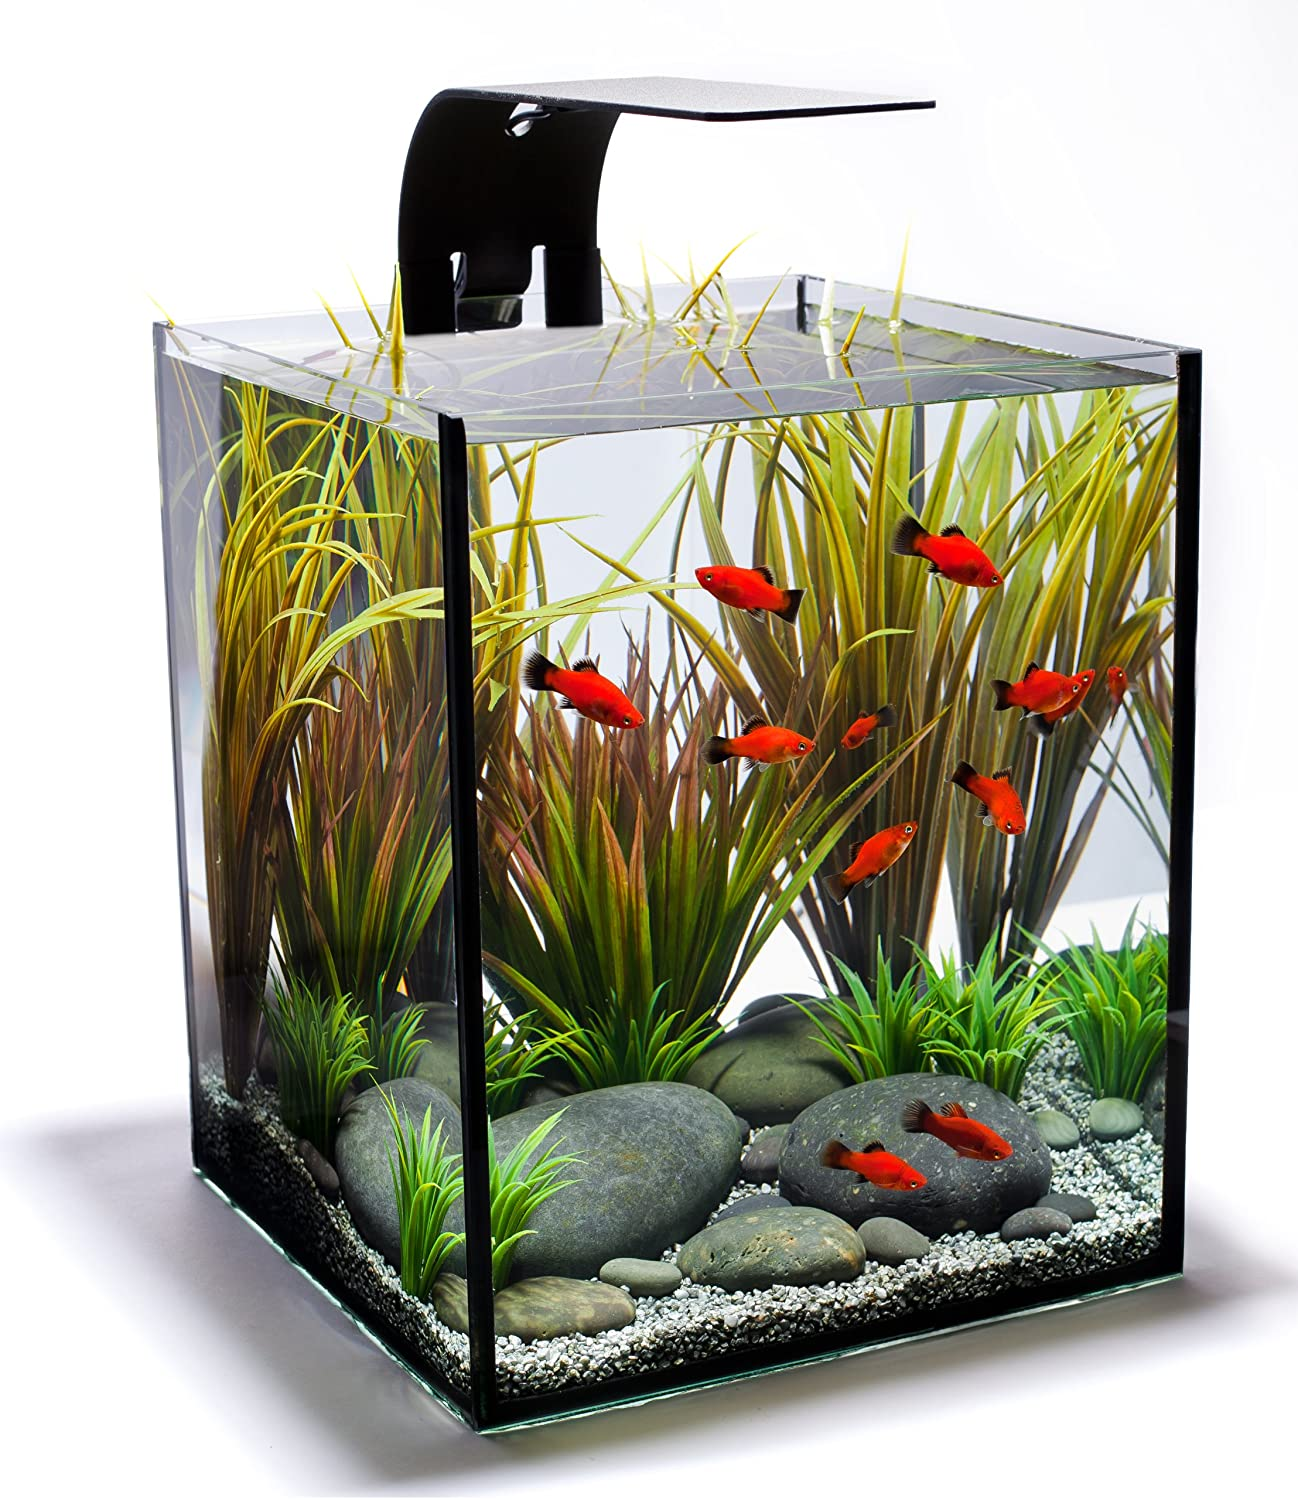 Modern cool small fish tanks for the office desk my dog for Cool small fish tanks